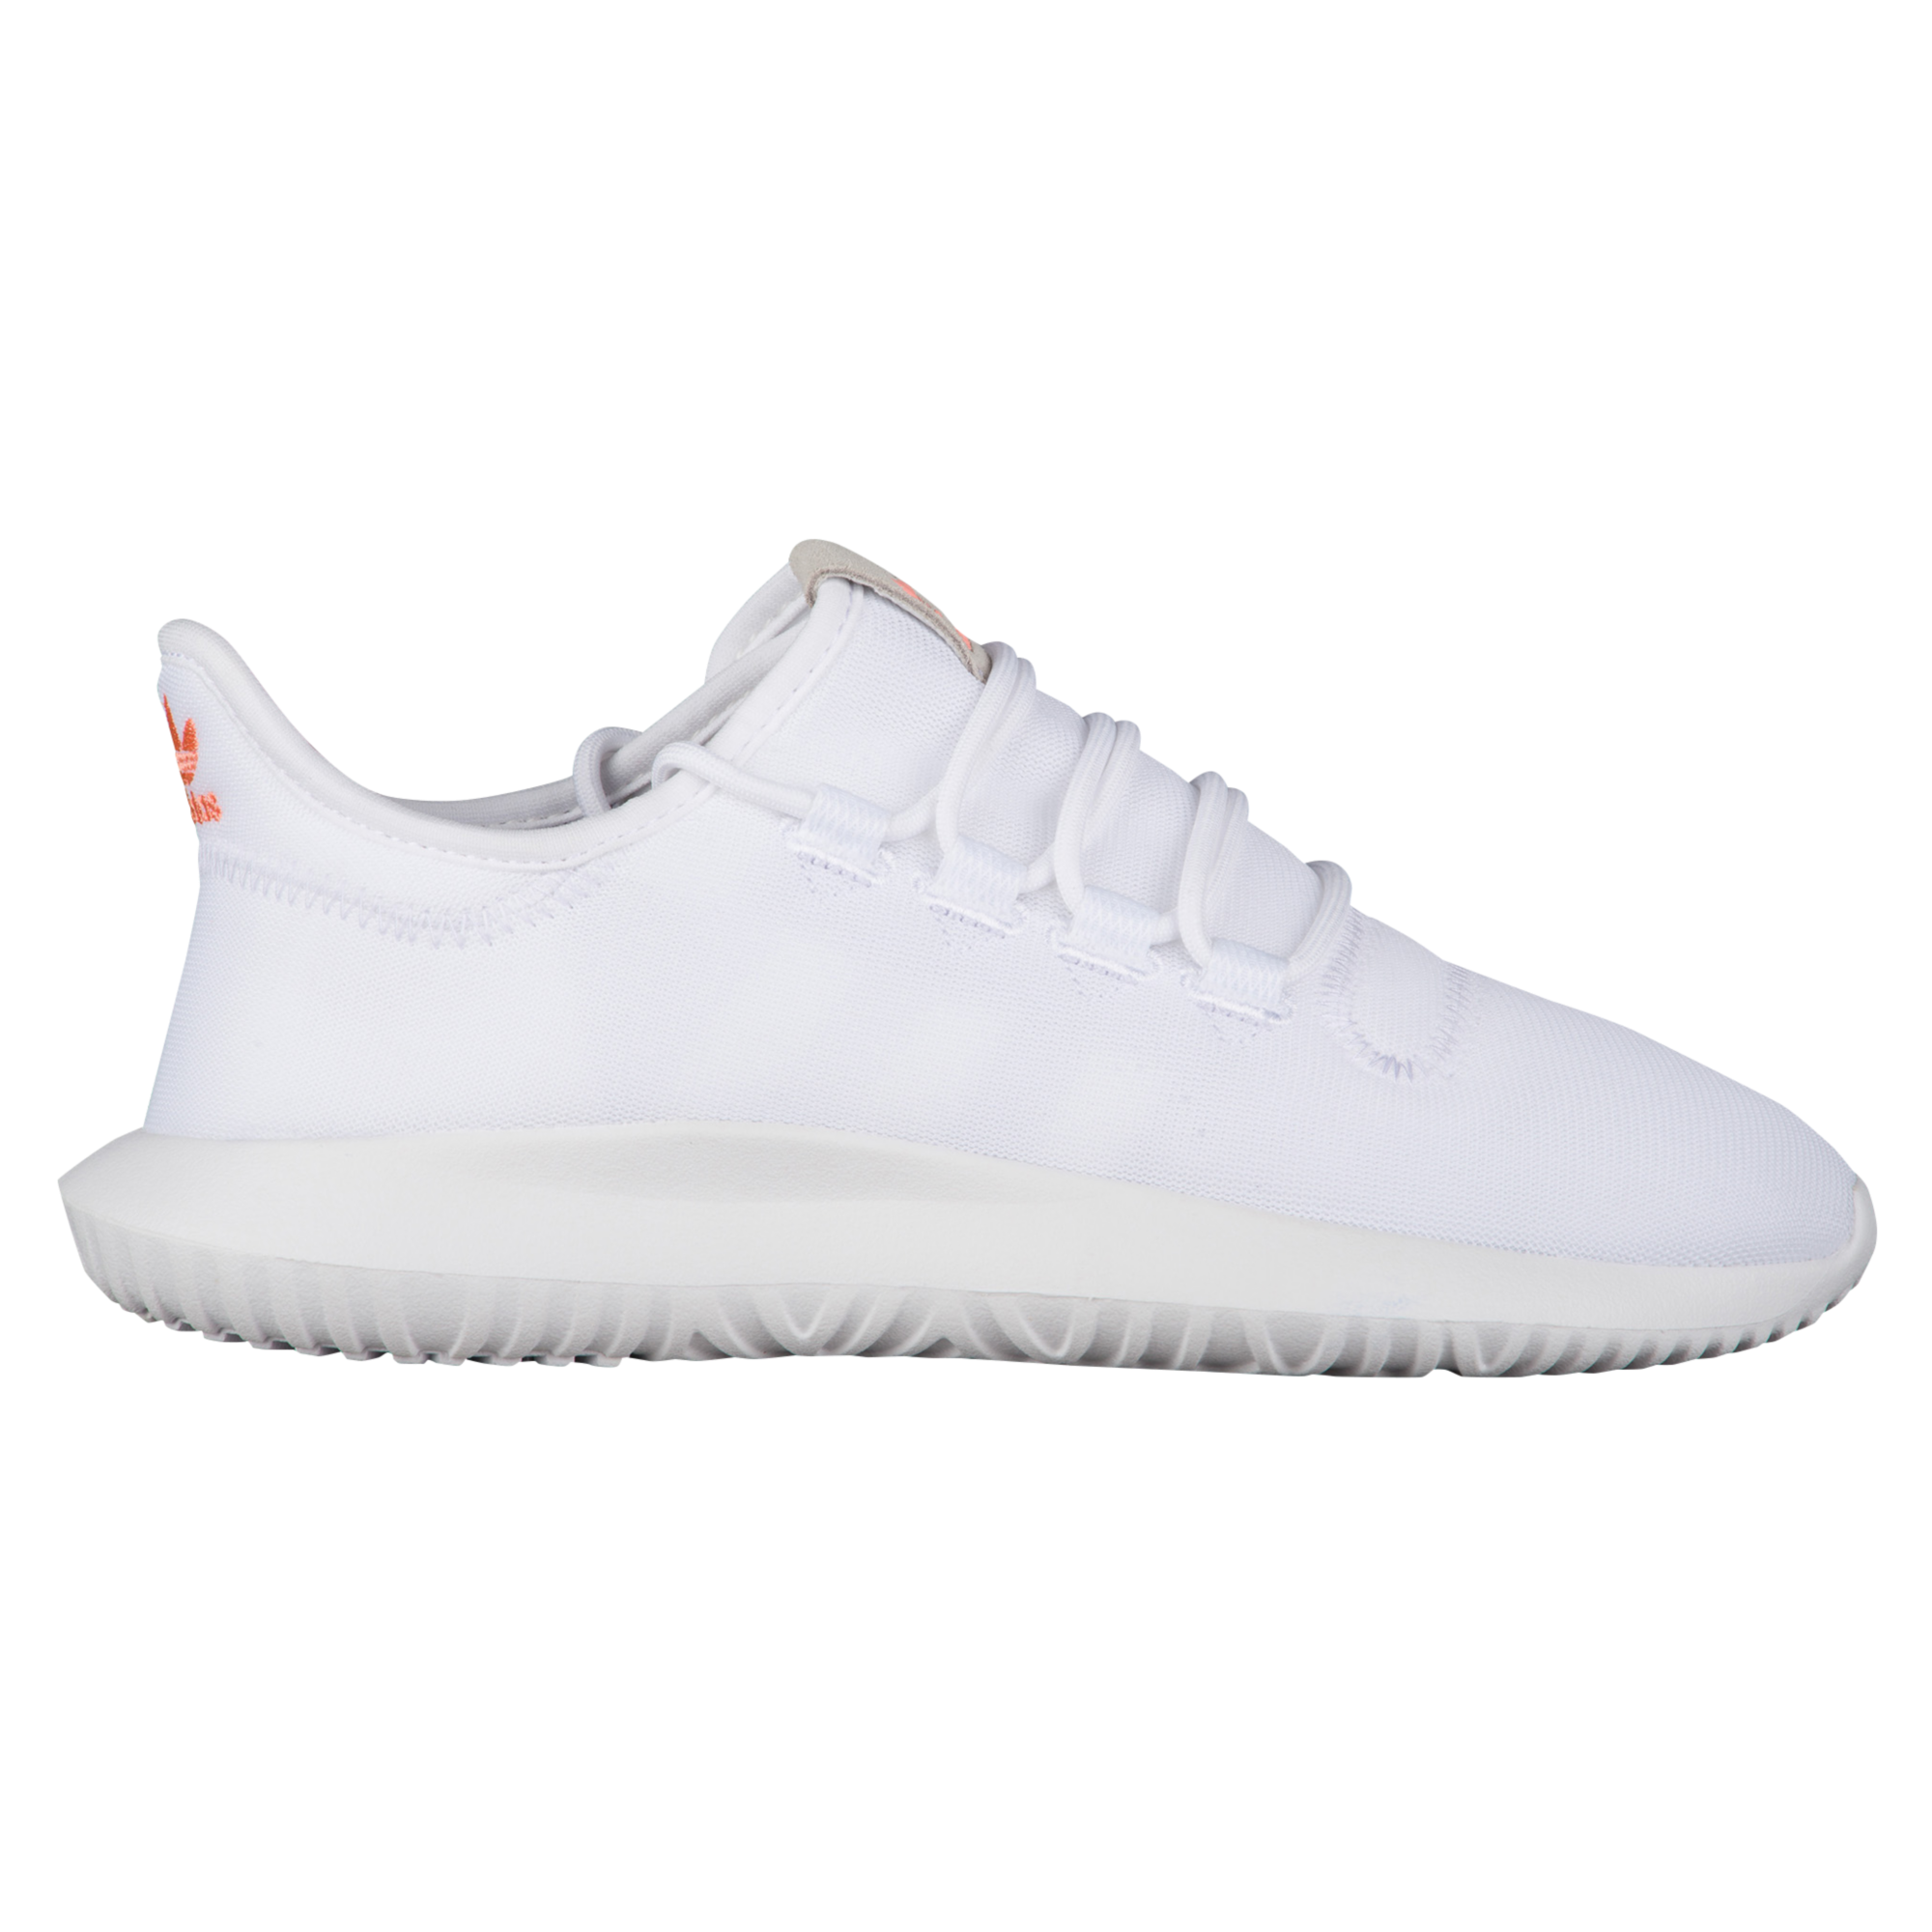 892ce592982b2 adidas Originals Tubular Shadow - Women s